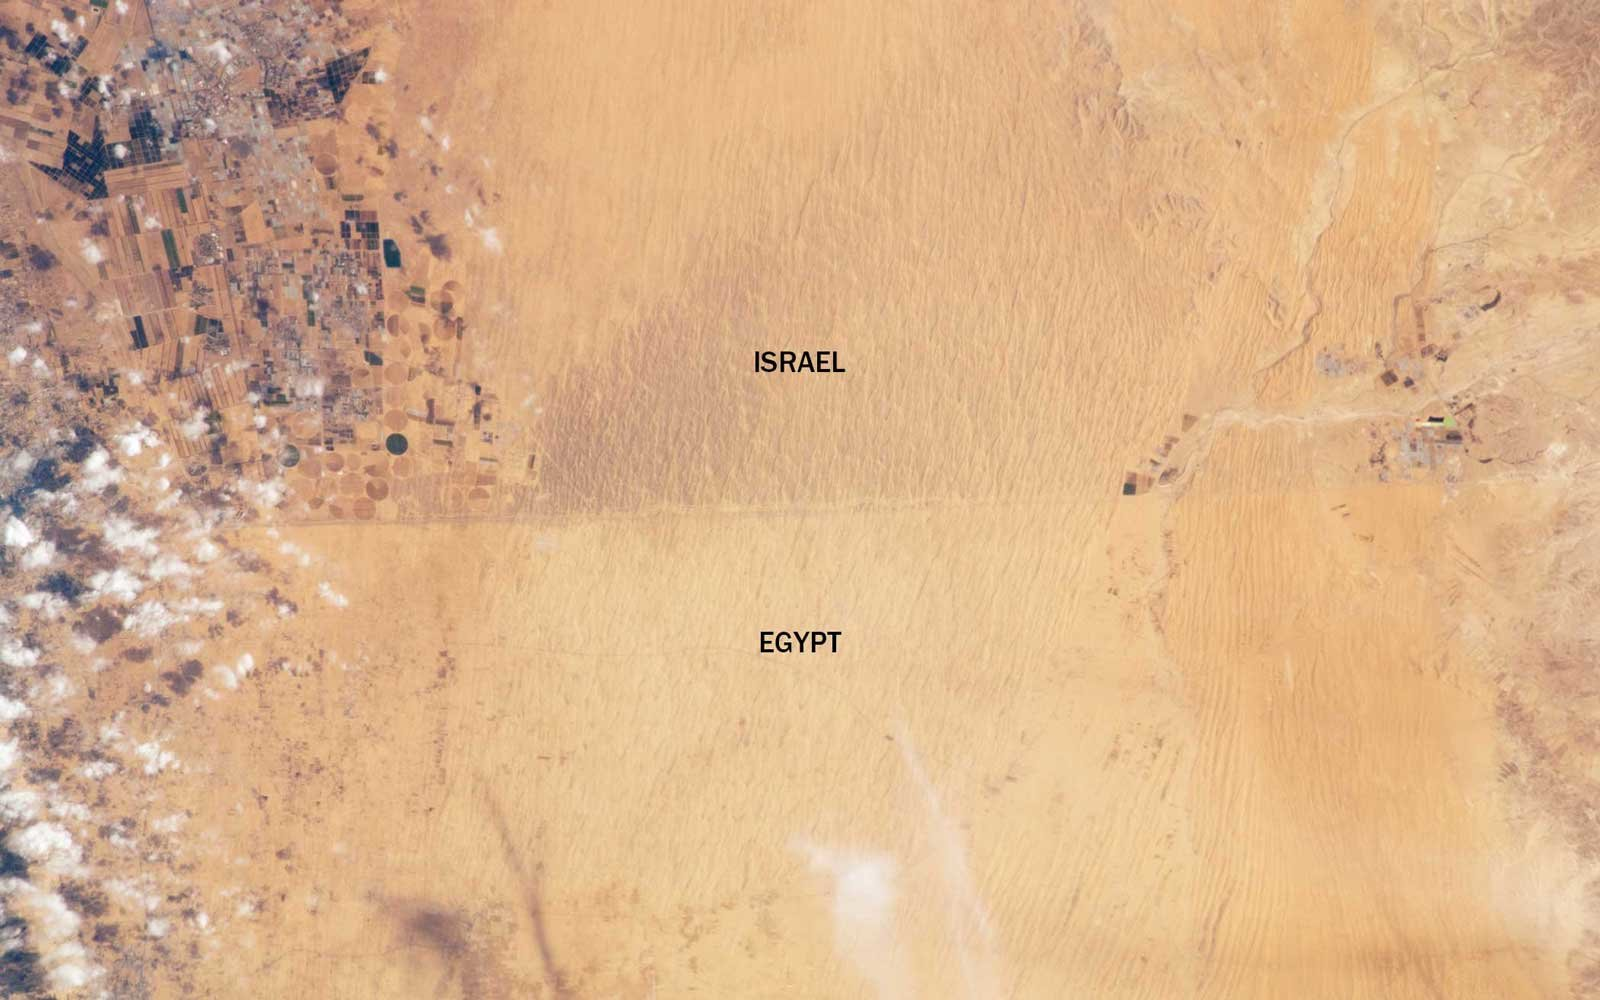 International Borders Israel Egypt